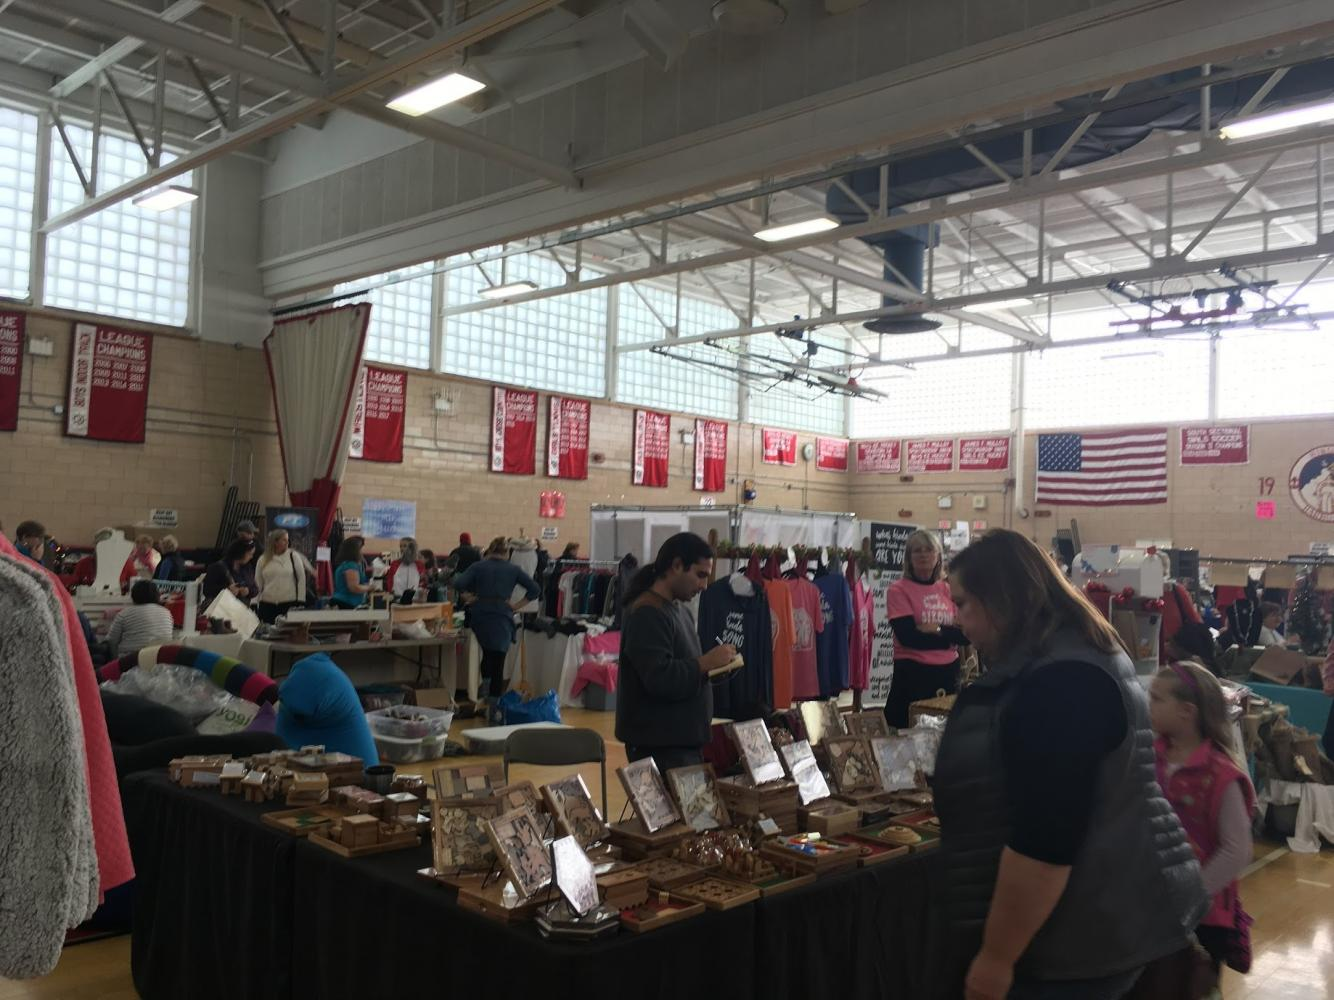 The high school's gymnasium filled with various local businesses' stands.